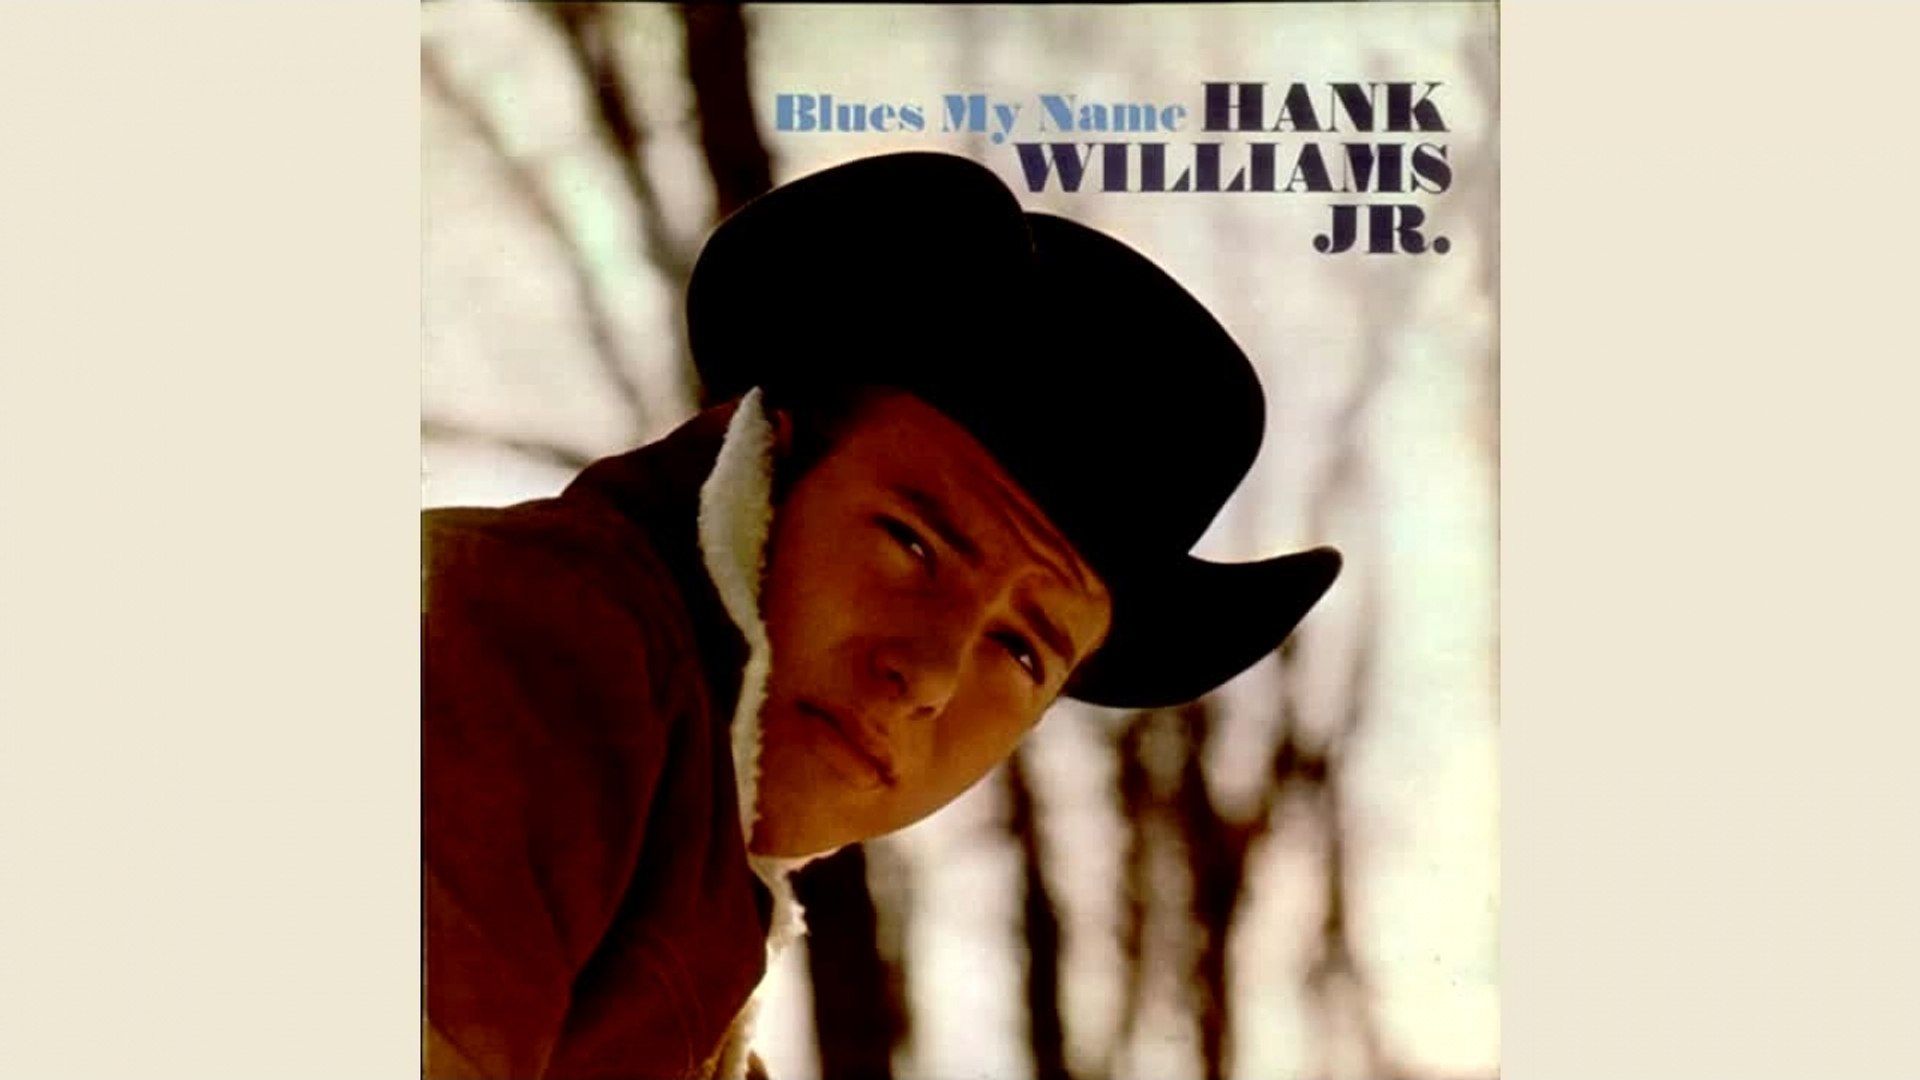 Hank Williams Jr. - Blue's My Name - Full Album